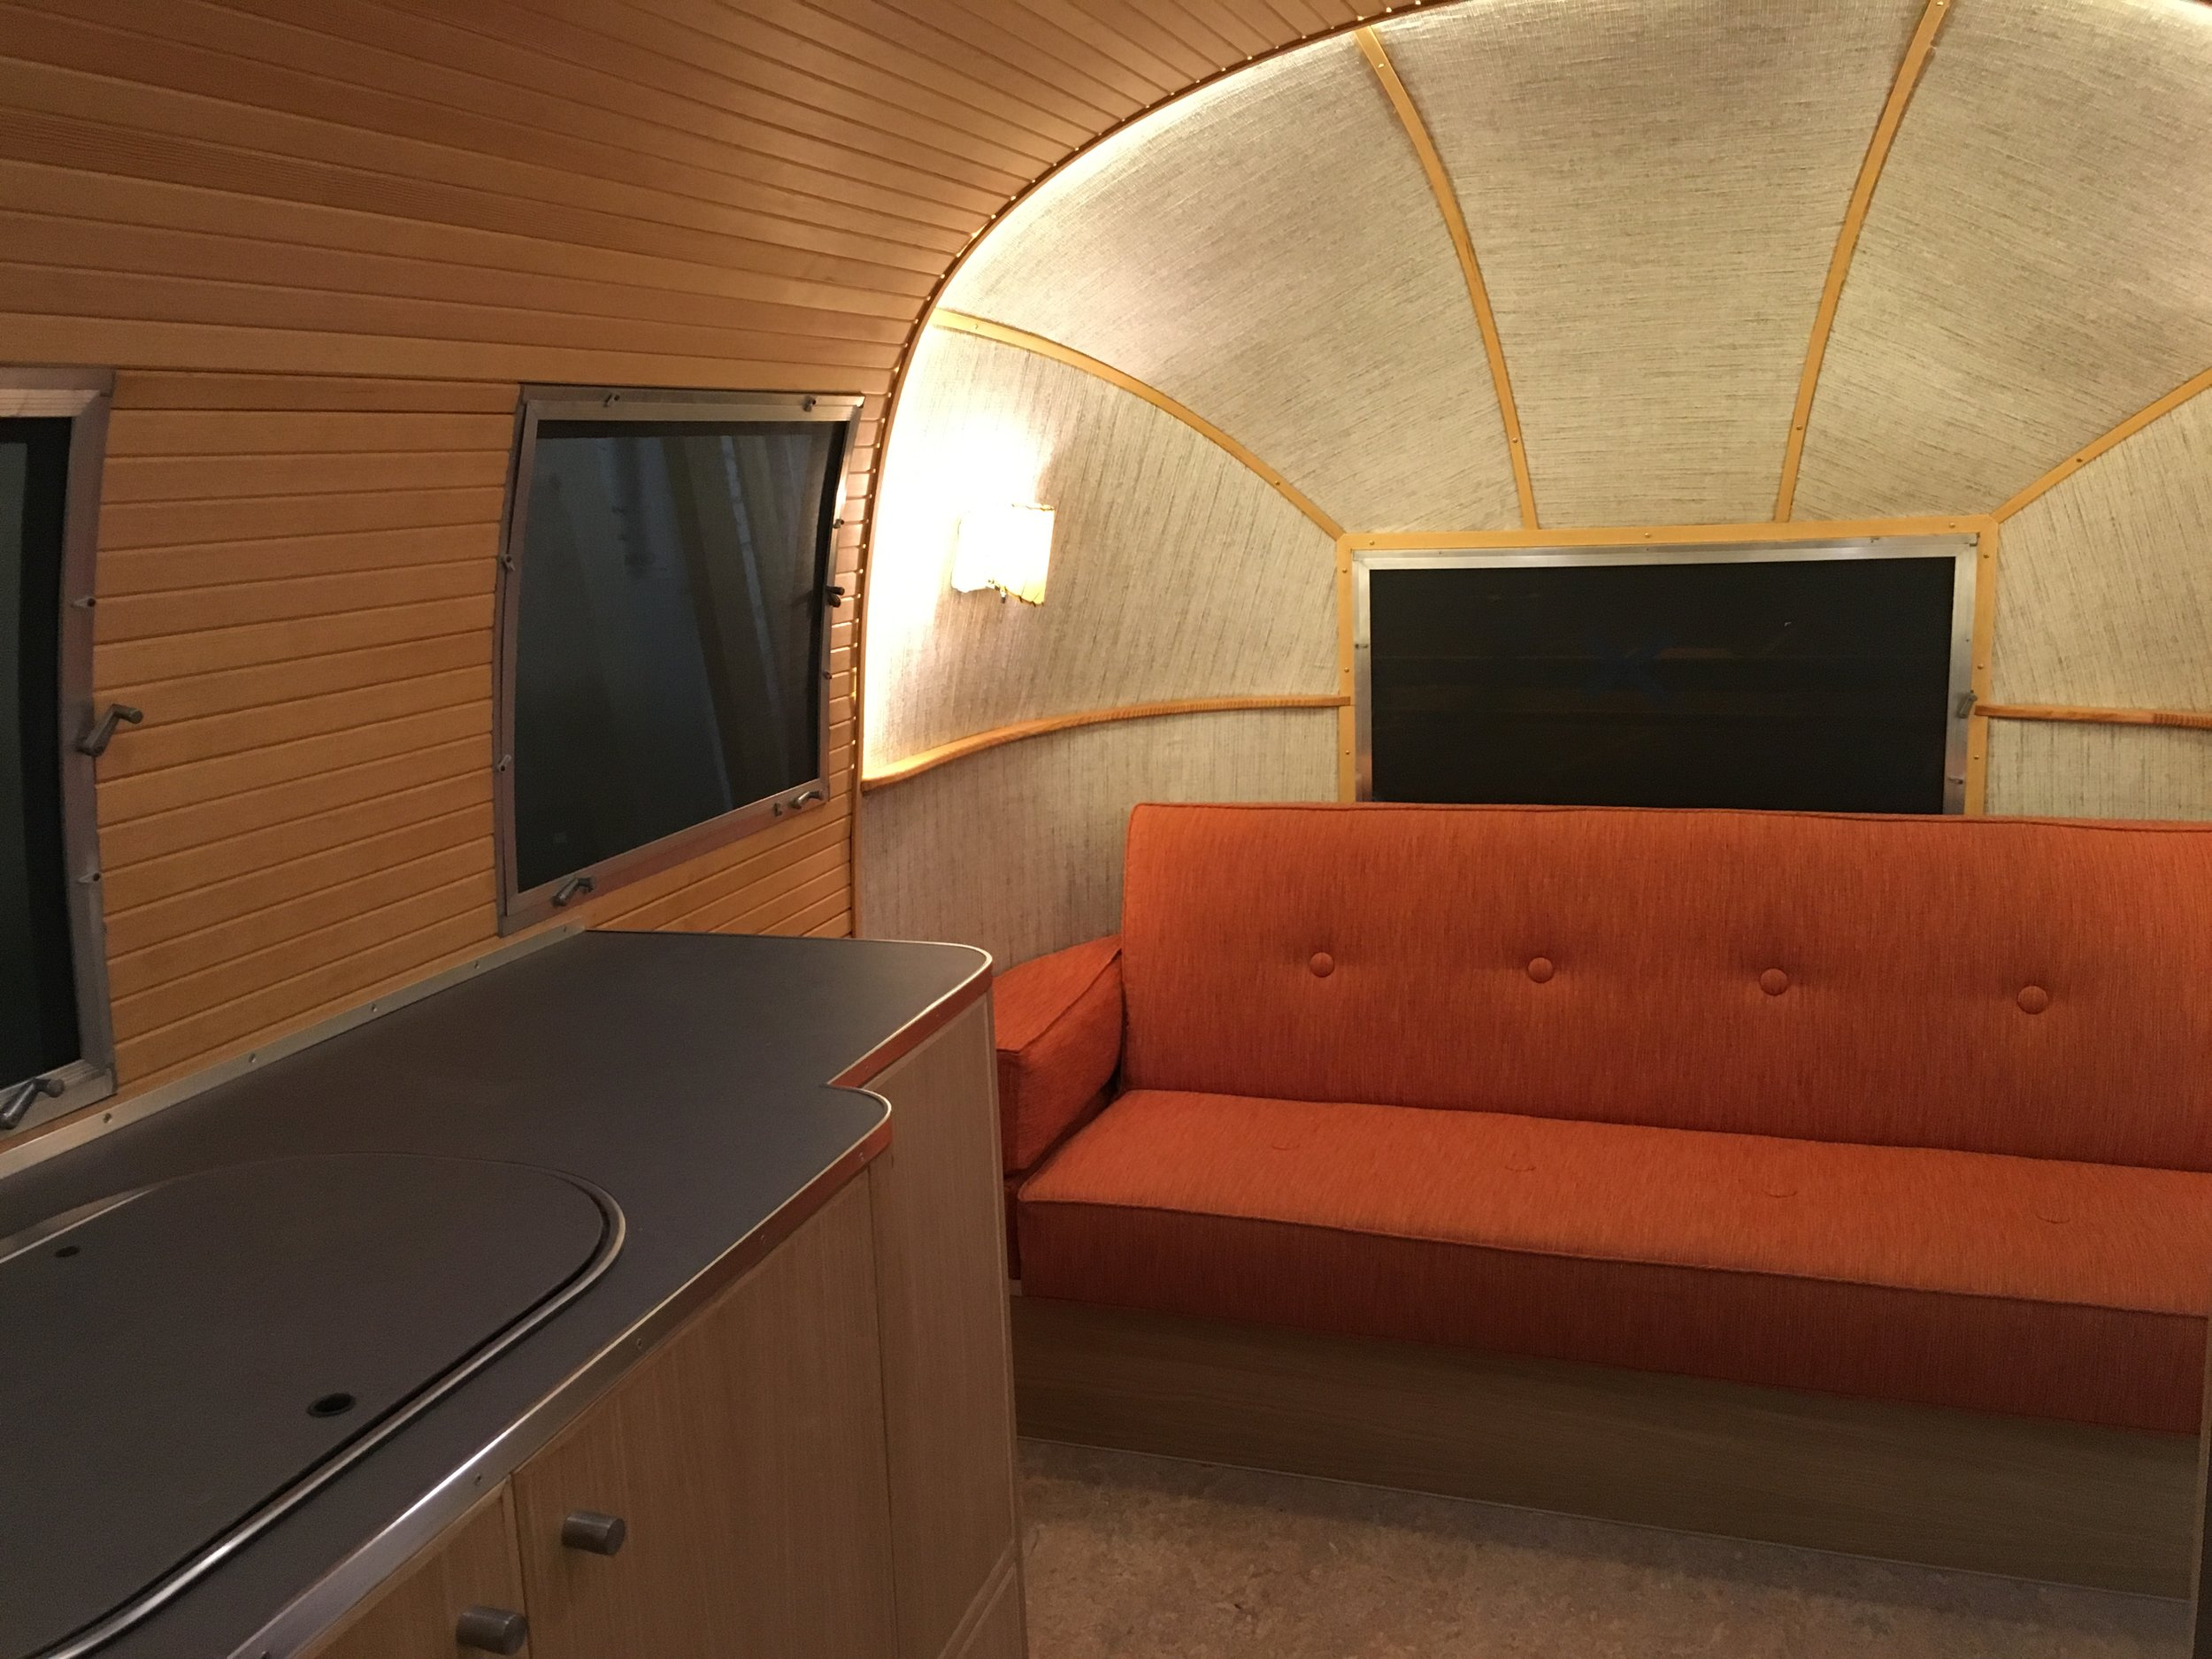 Upholstered end caps and straight-grain tongue and groove Douglas fir wraparound ceiling and walls. Custom orange click-clack sofa.